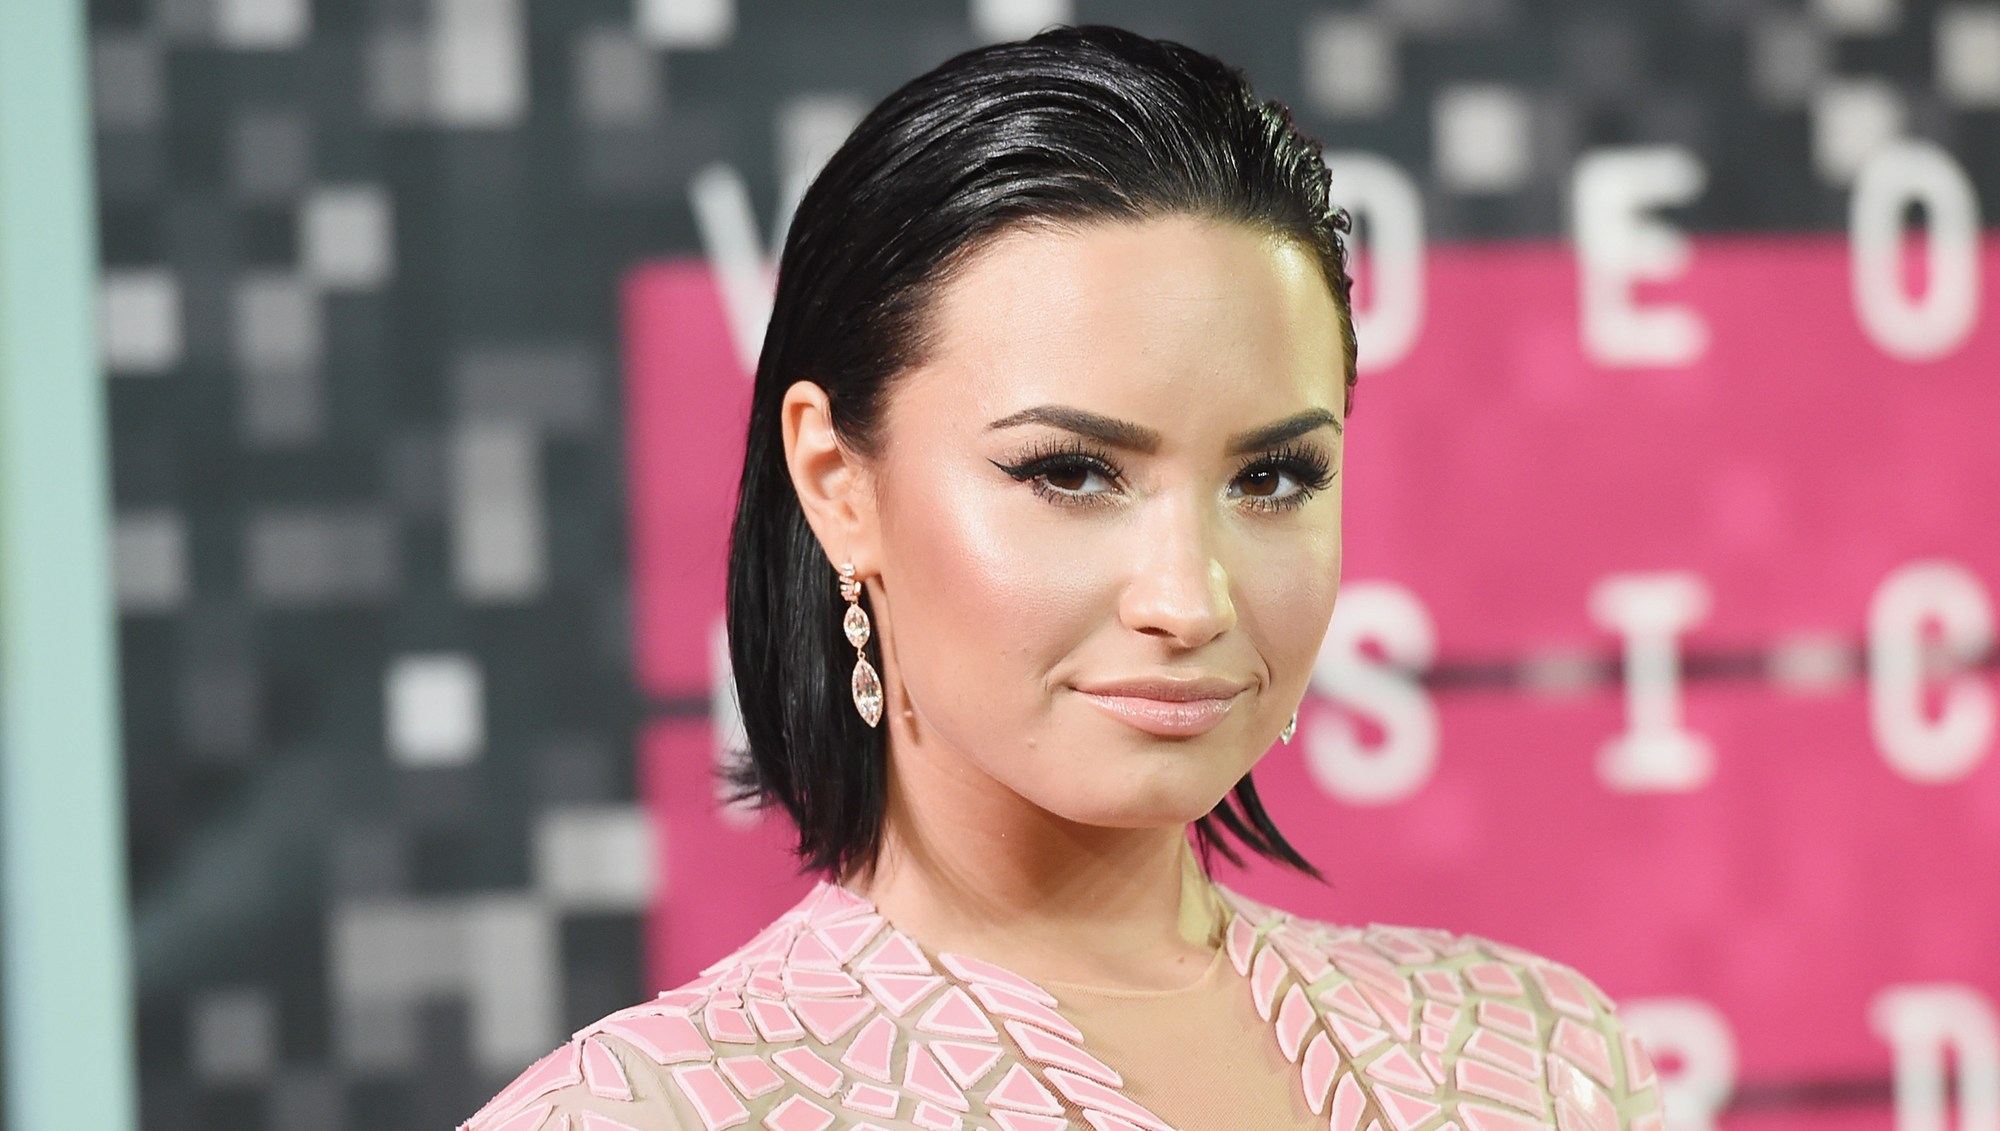 Demi Lovato on Would-Be Sober Anniversary: 'I Needed to Make Those Mistakes'